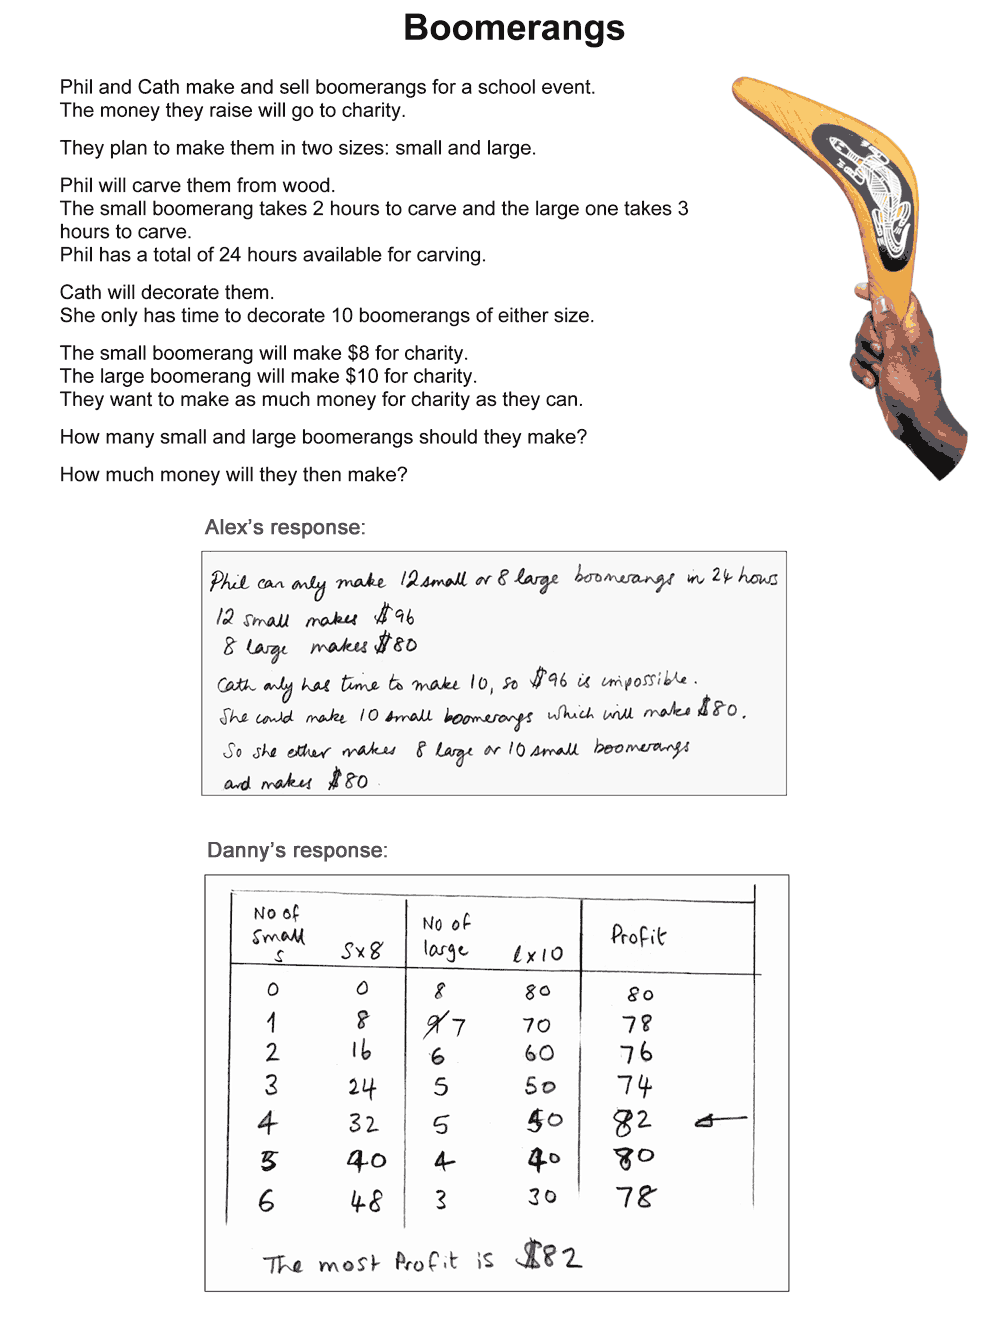 developing students strategies for problem solving figure 7 boomerangs problem and sample work